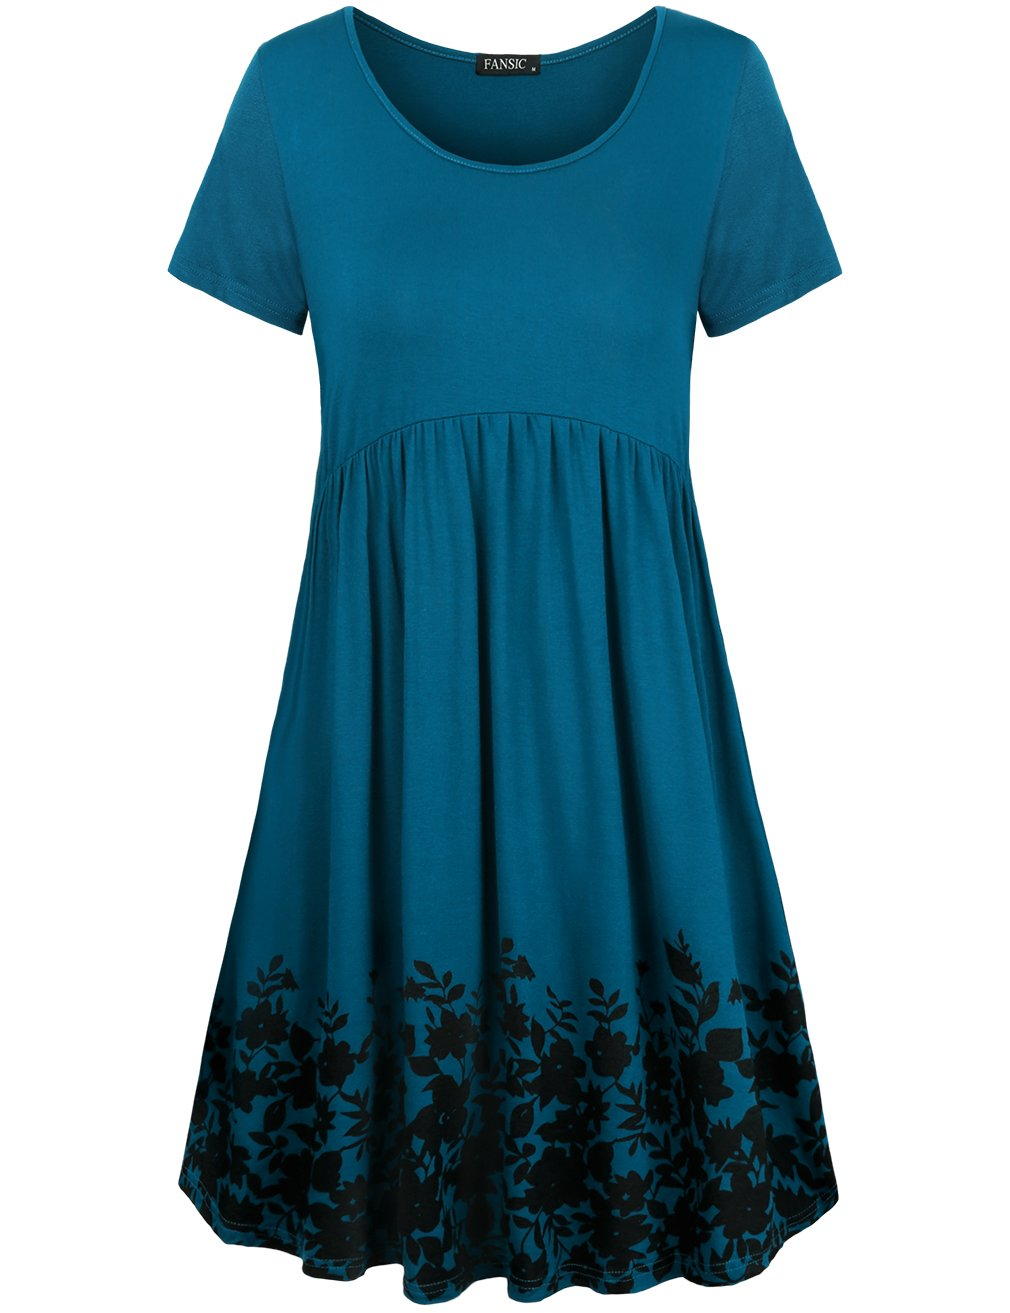 Available at Amazon: FANSIC Women's Long Sleeve Floral Printed Pleated Swing Midi Dress Short Sleeve with Pockets